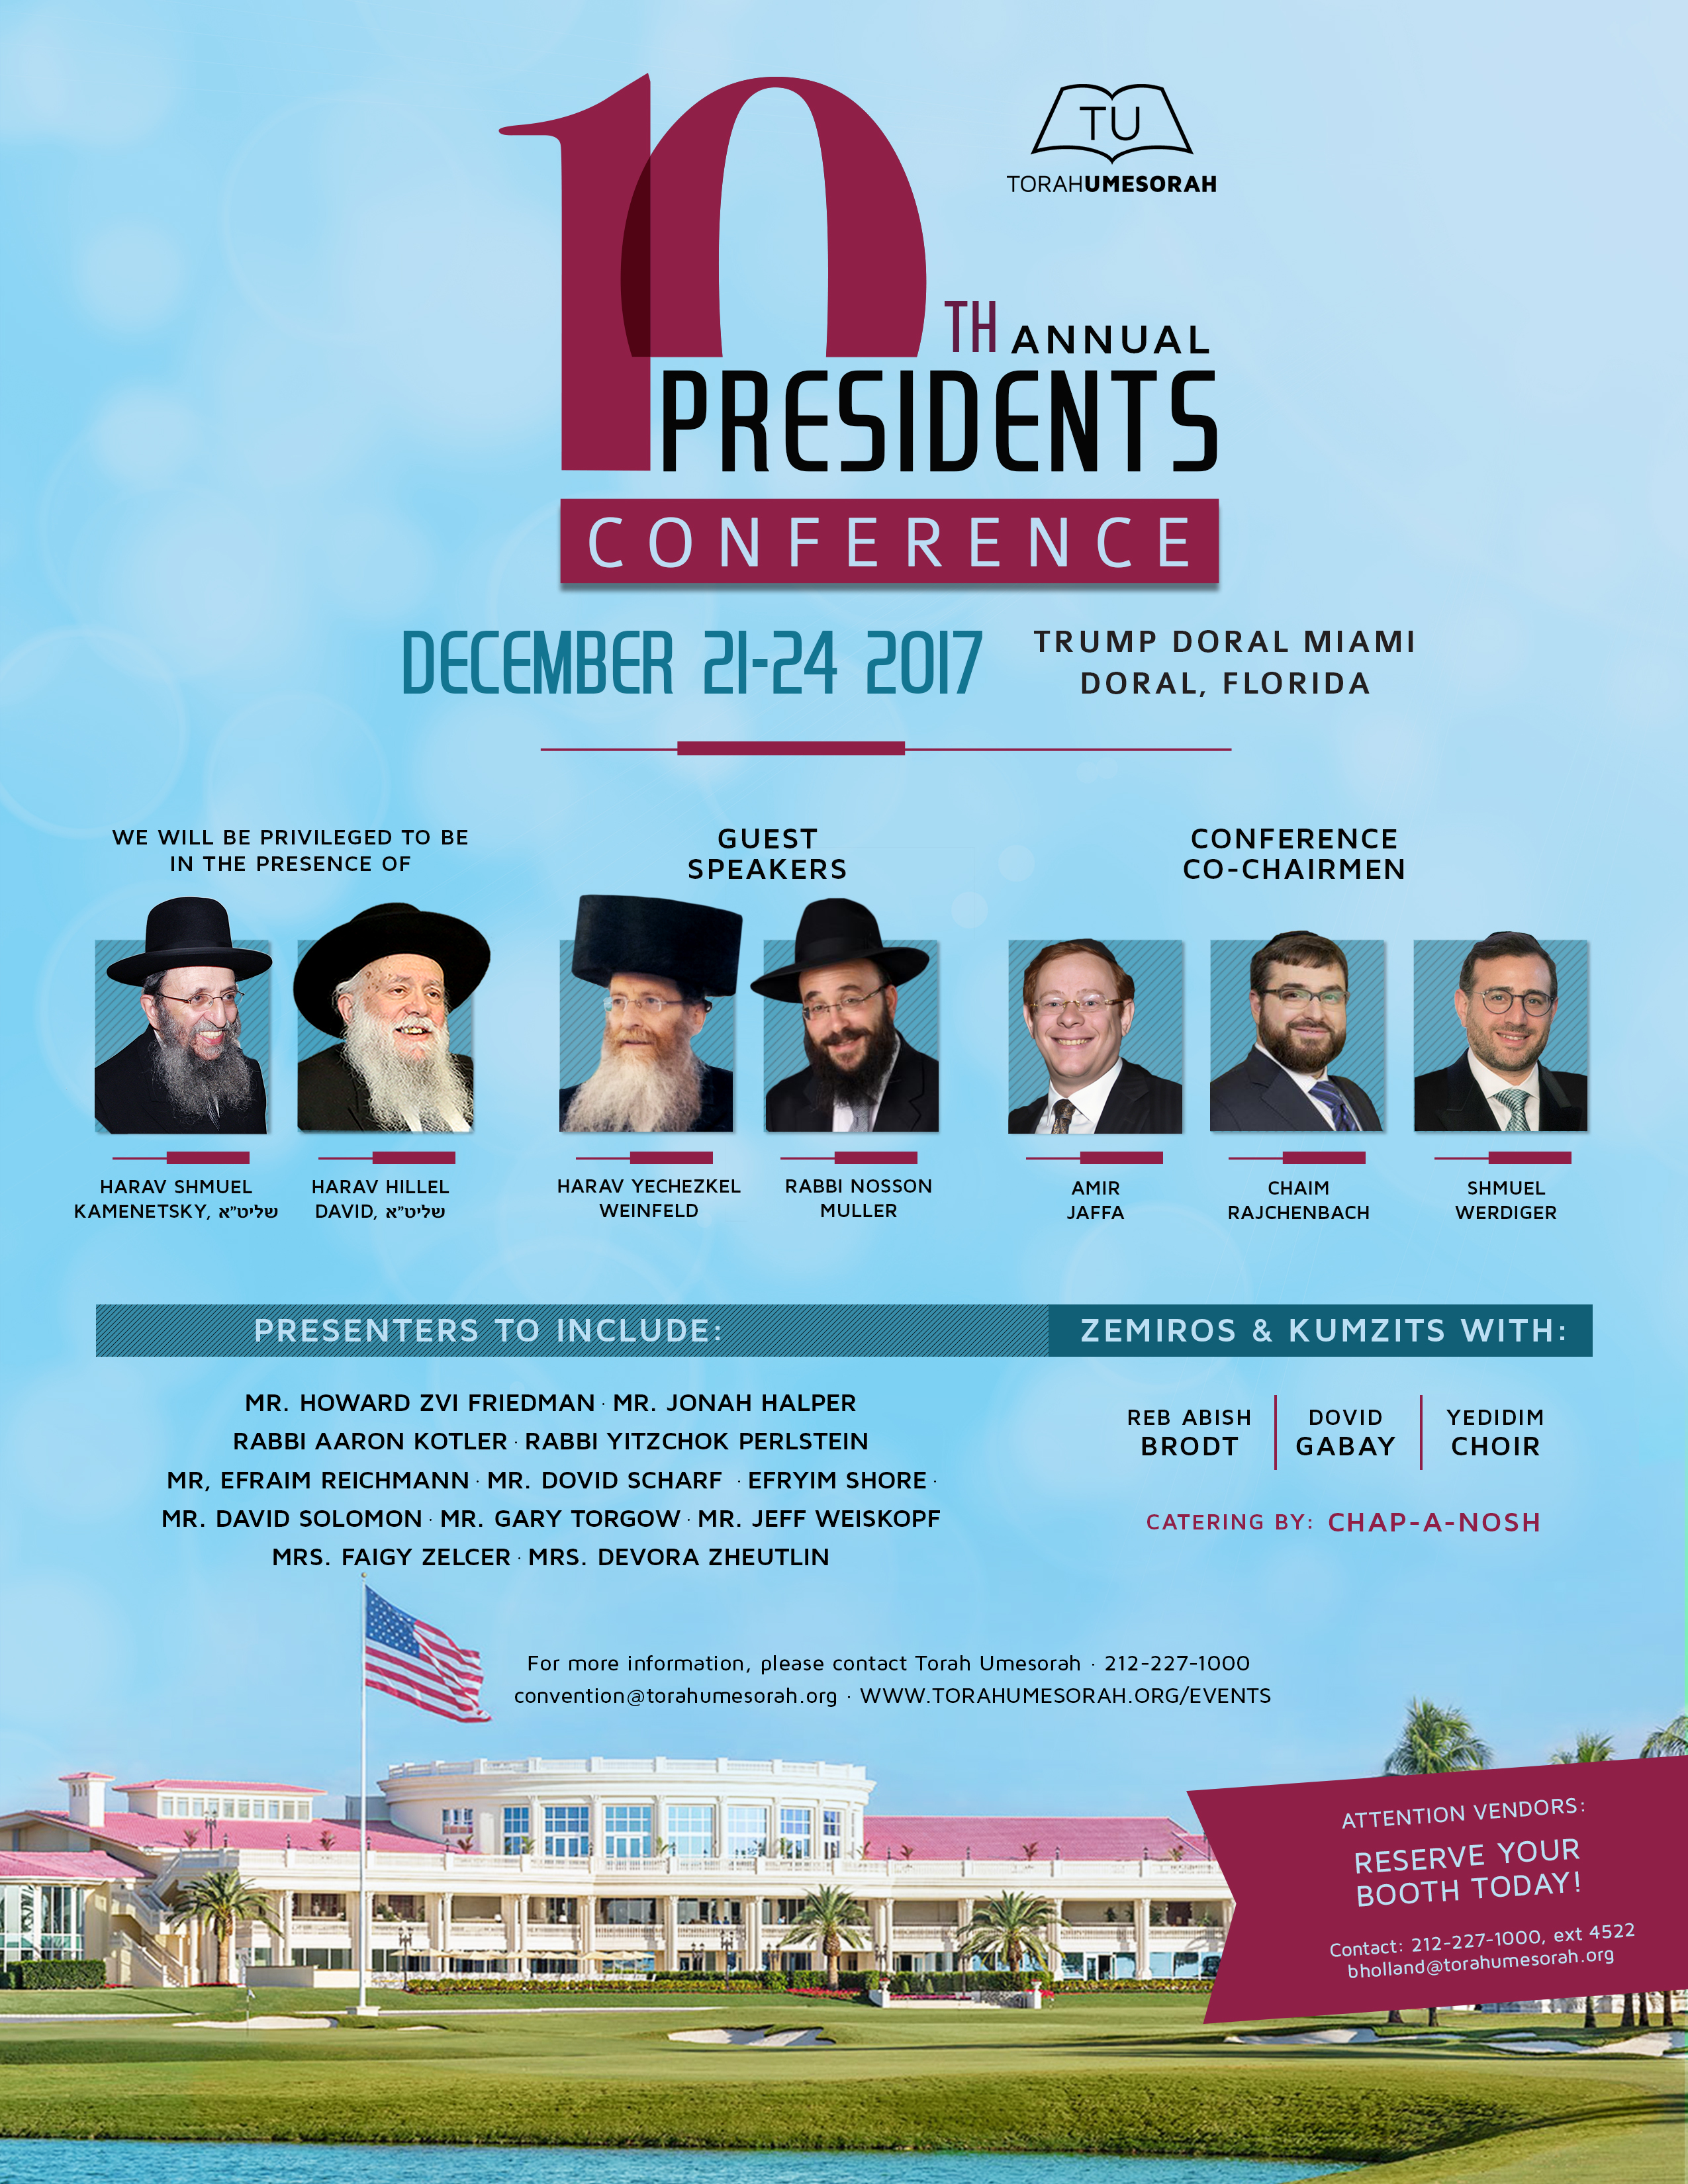 10th Annual Presidents Conference